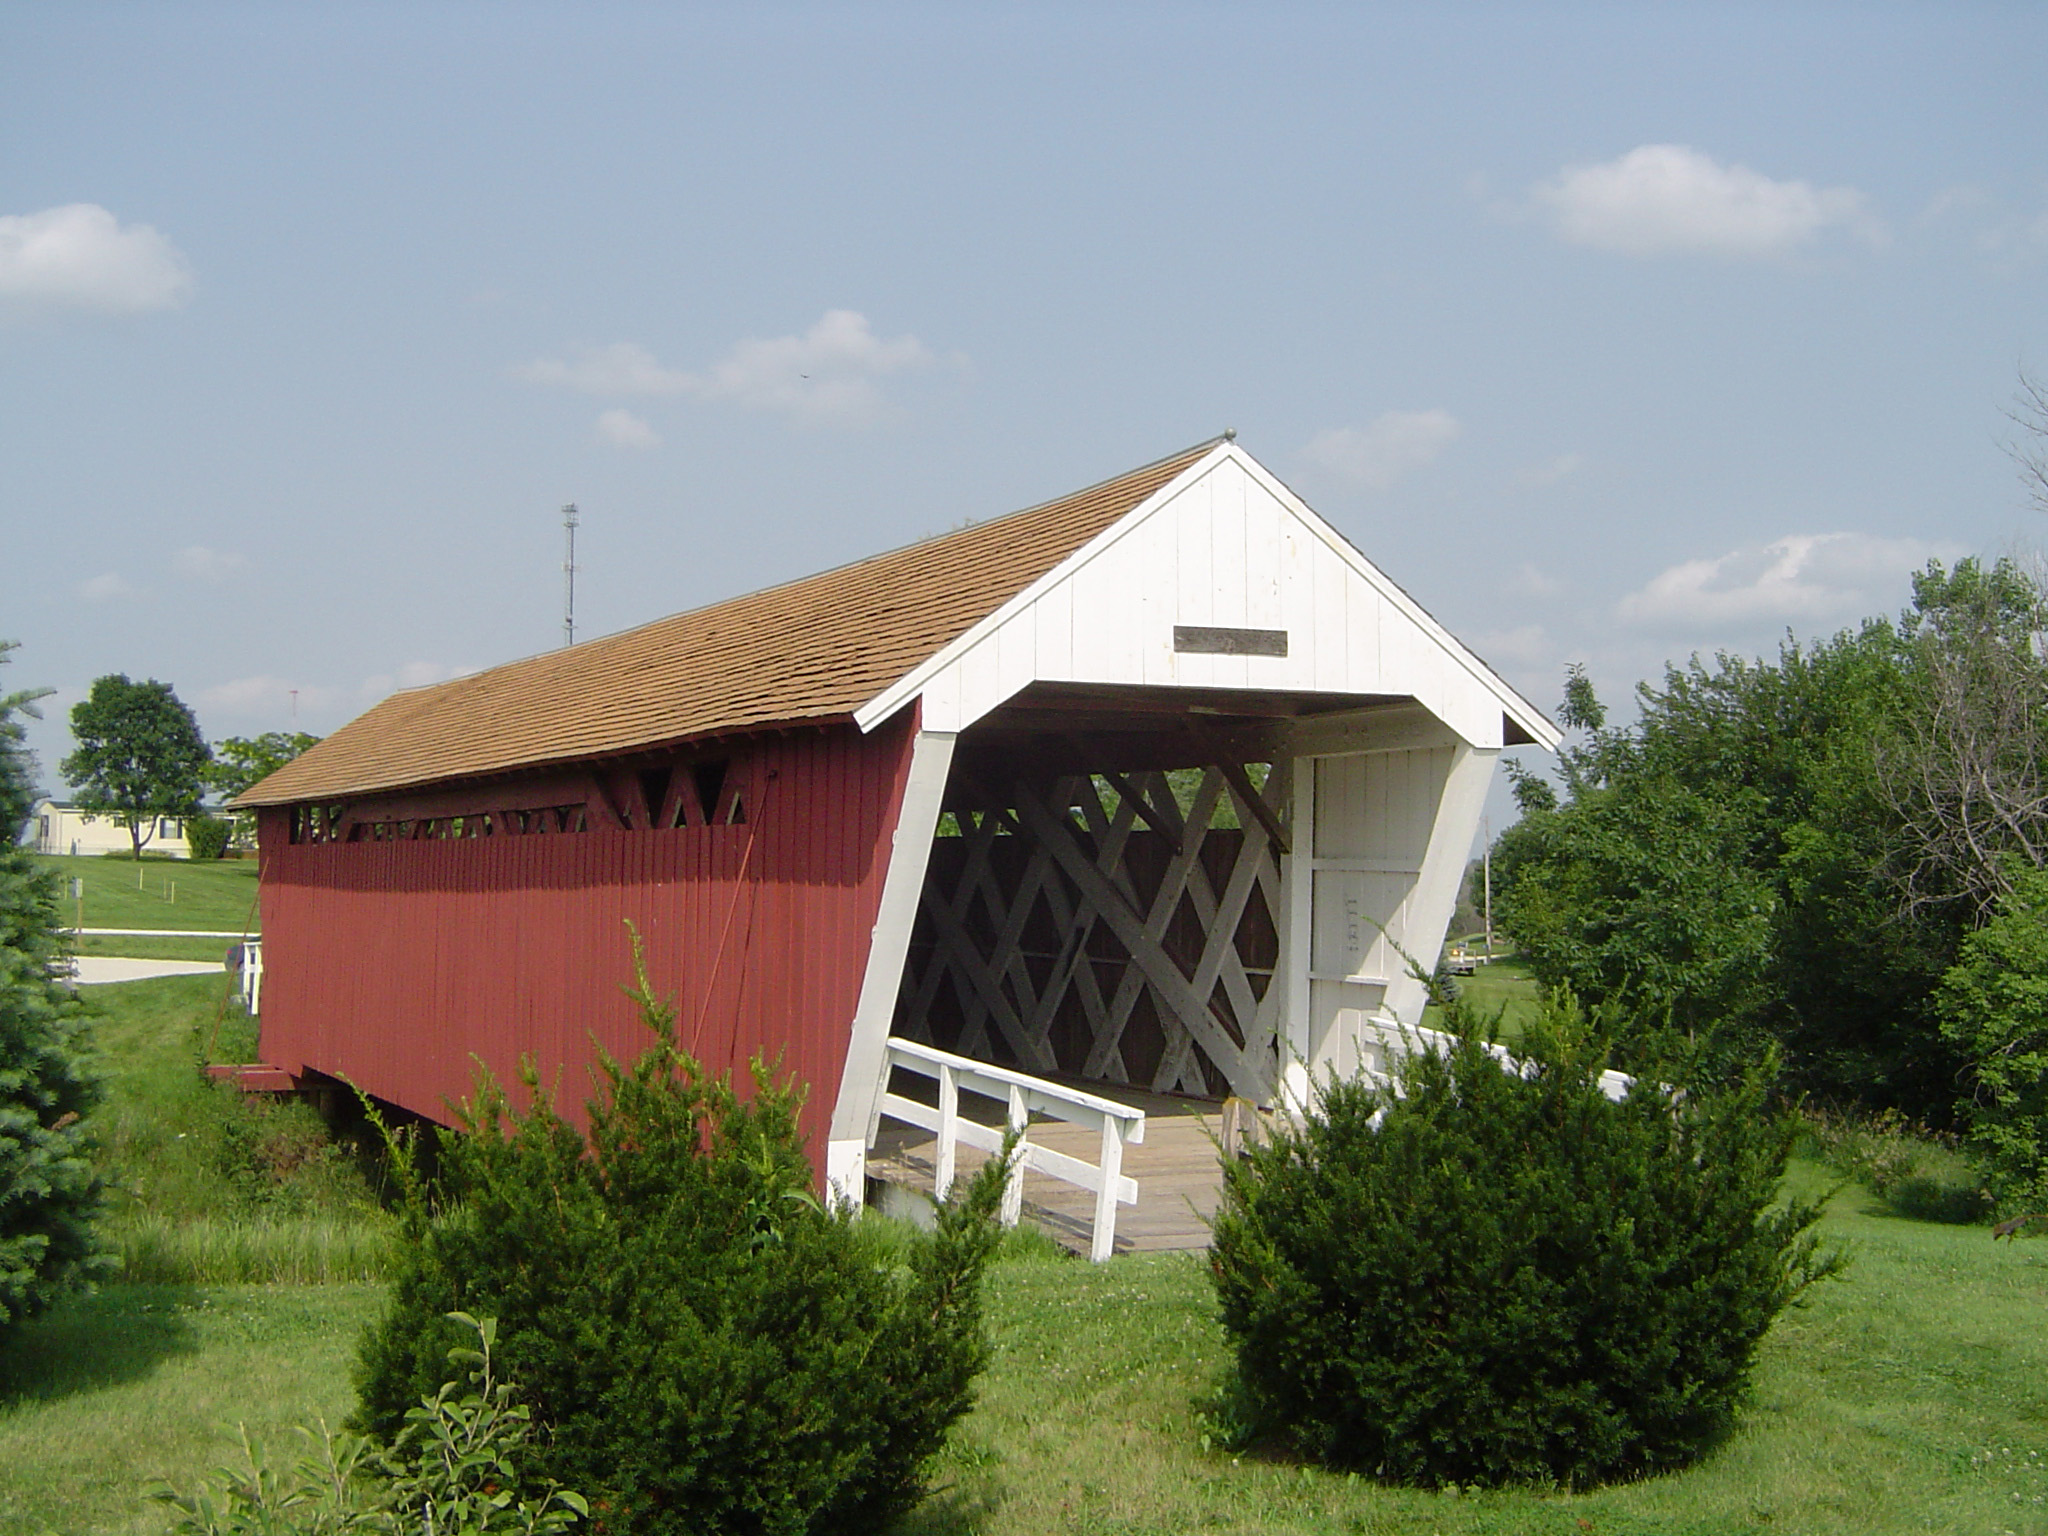 Covered Bridge with Green Grasses and Plants on Sides at Madison County Iowa. Isolated on Light Blue Sky Background.